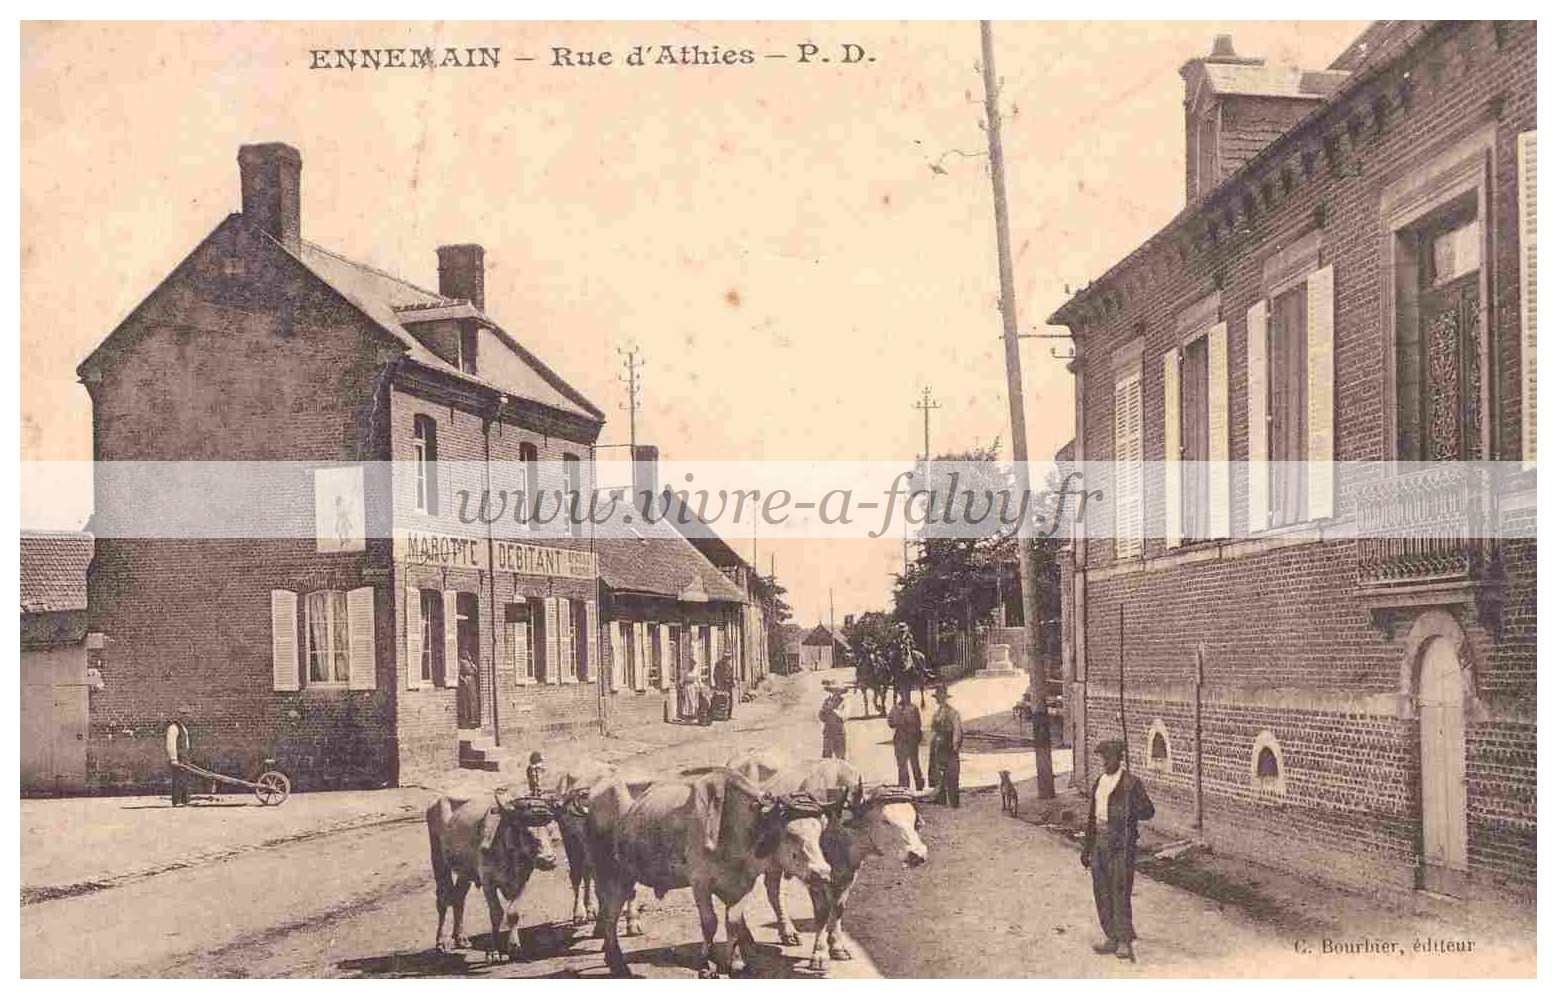 Ennemain - Rue d'Athies